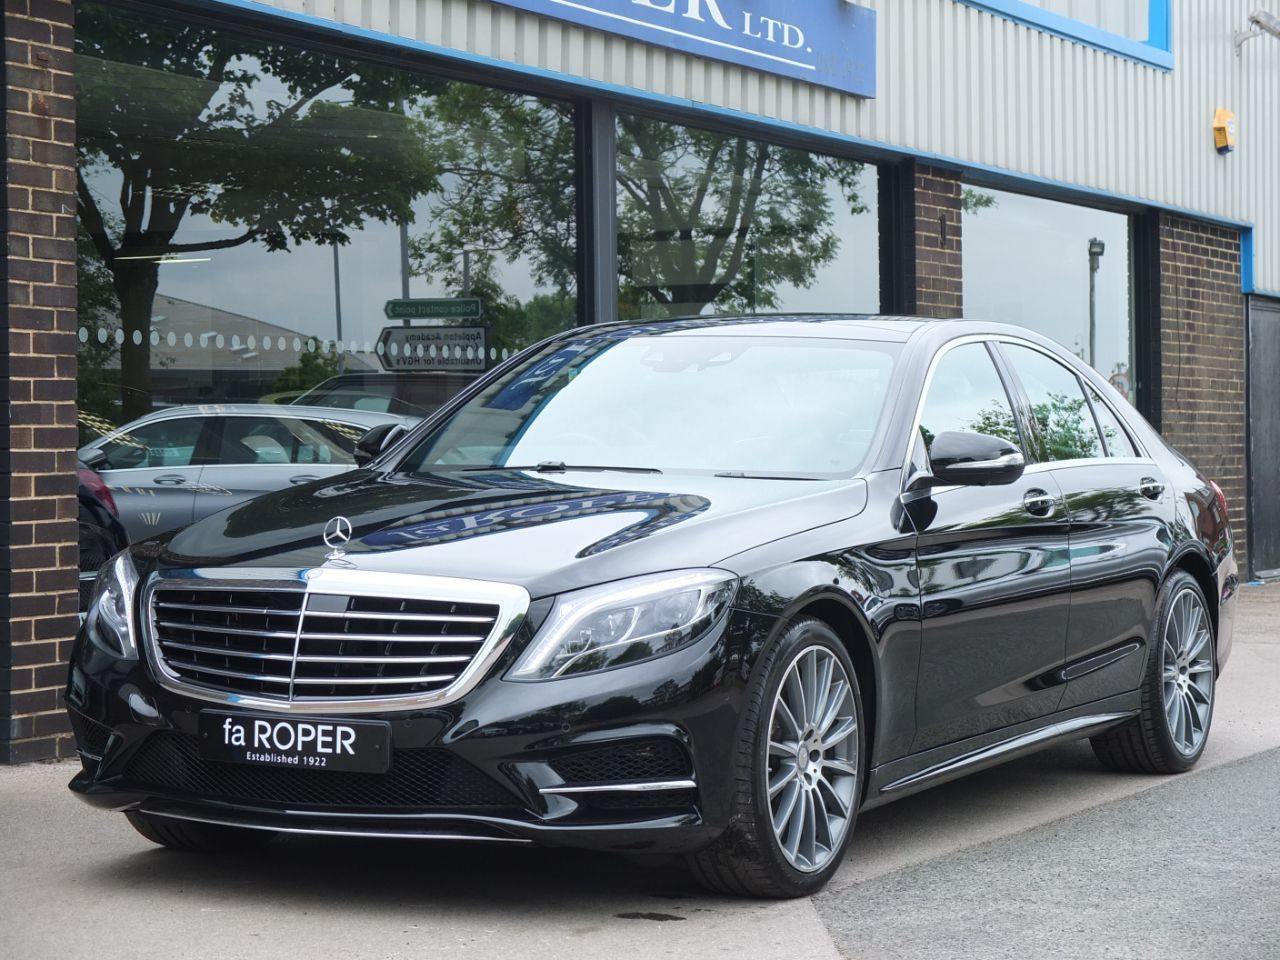 Mercedes-Benz S Class 3.0 S350d AMG Line G-Tronic (SWB) Saloon Diesel Obsidian Black MetallicMercedes-Benz S Class 3.0 S350d AMG Line G-Tronic (SWB) Saloon Diesel Obsidian Black Metallic at fa Roper Ltd Bradford